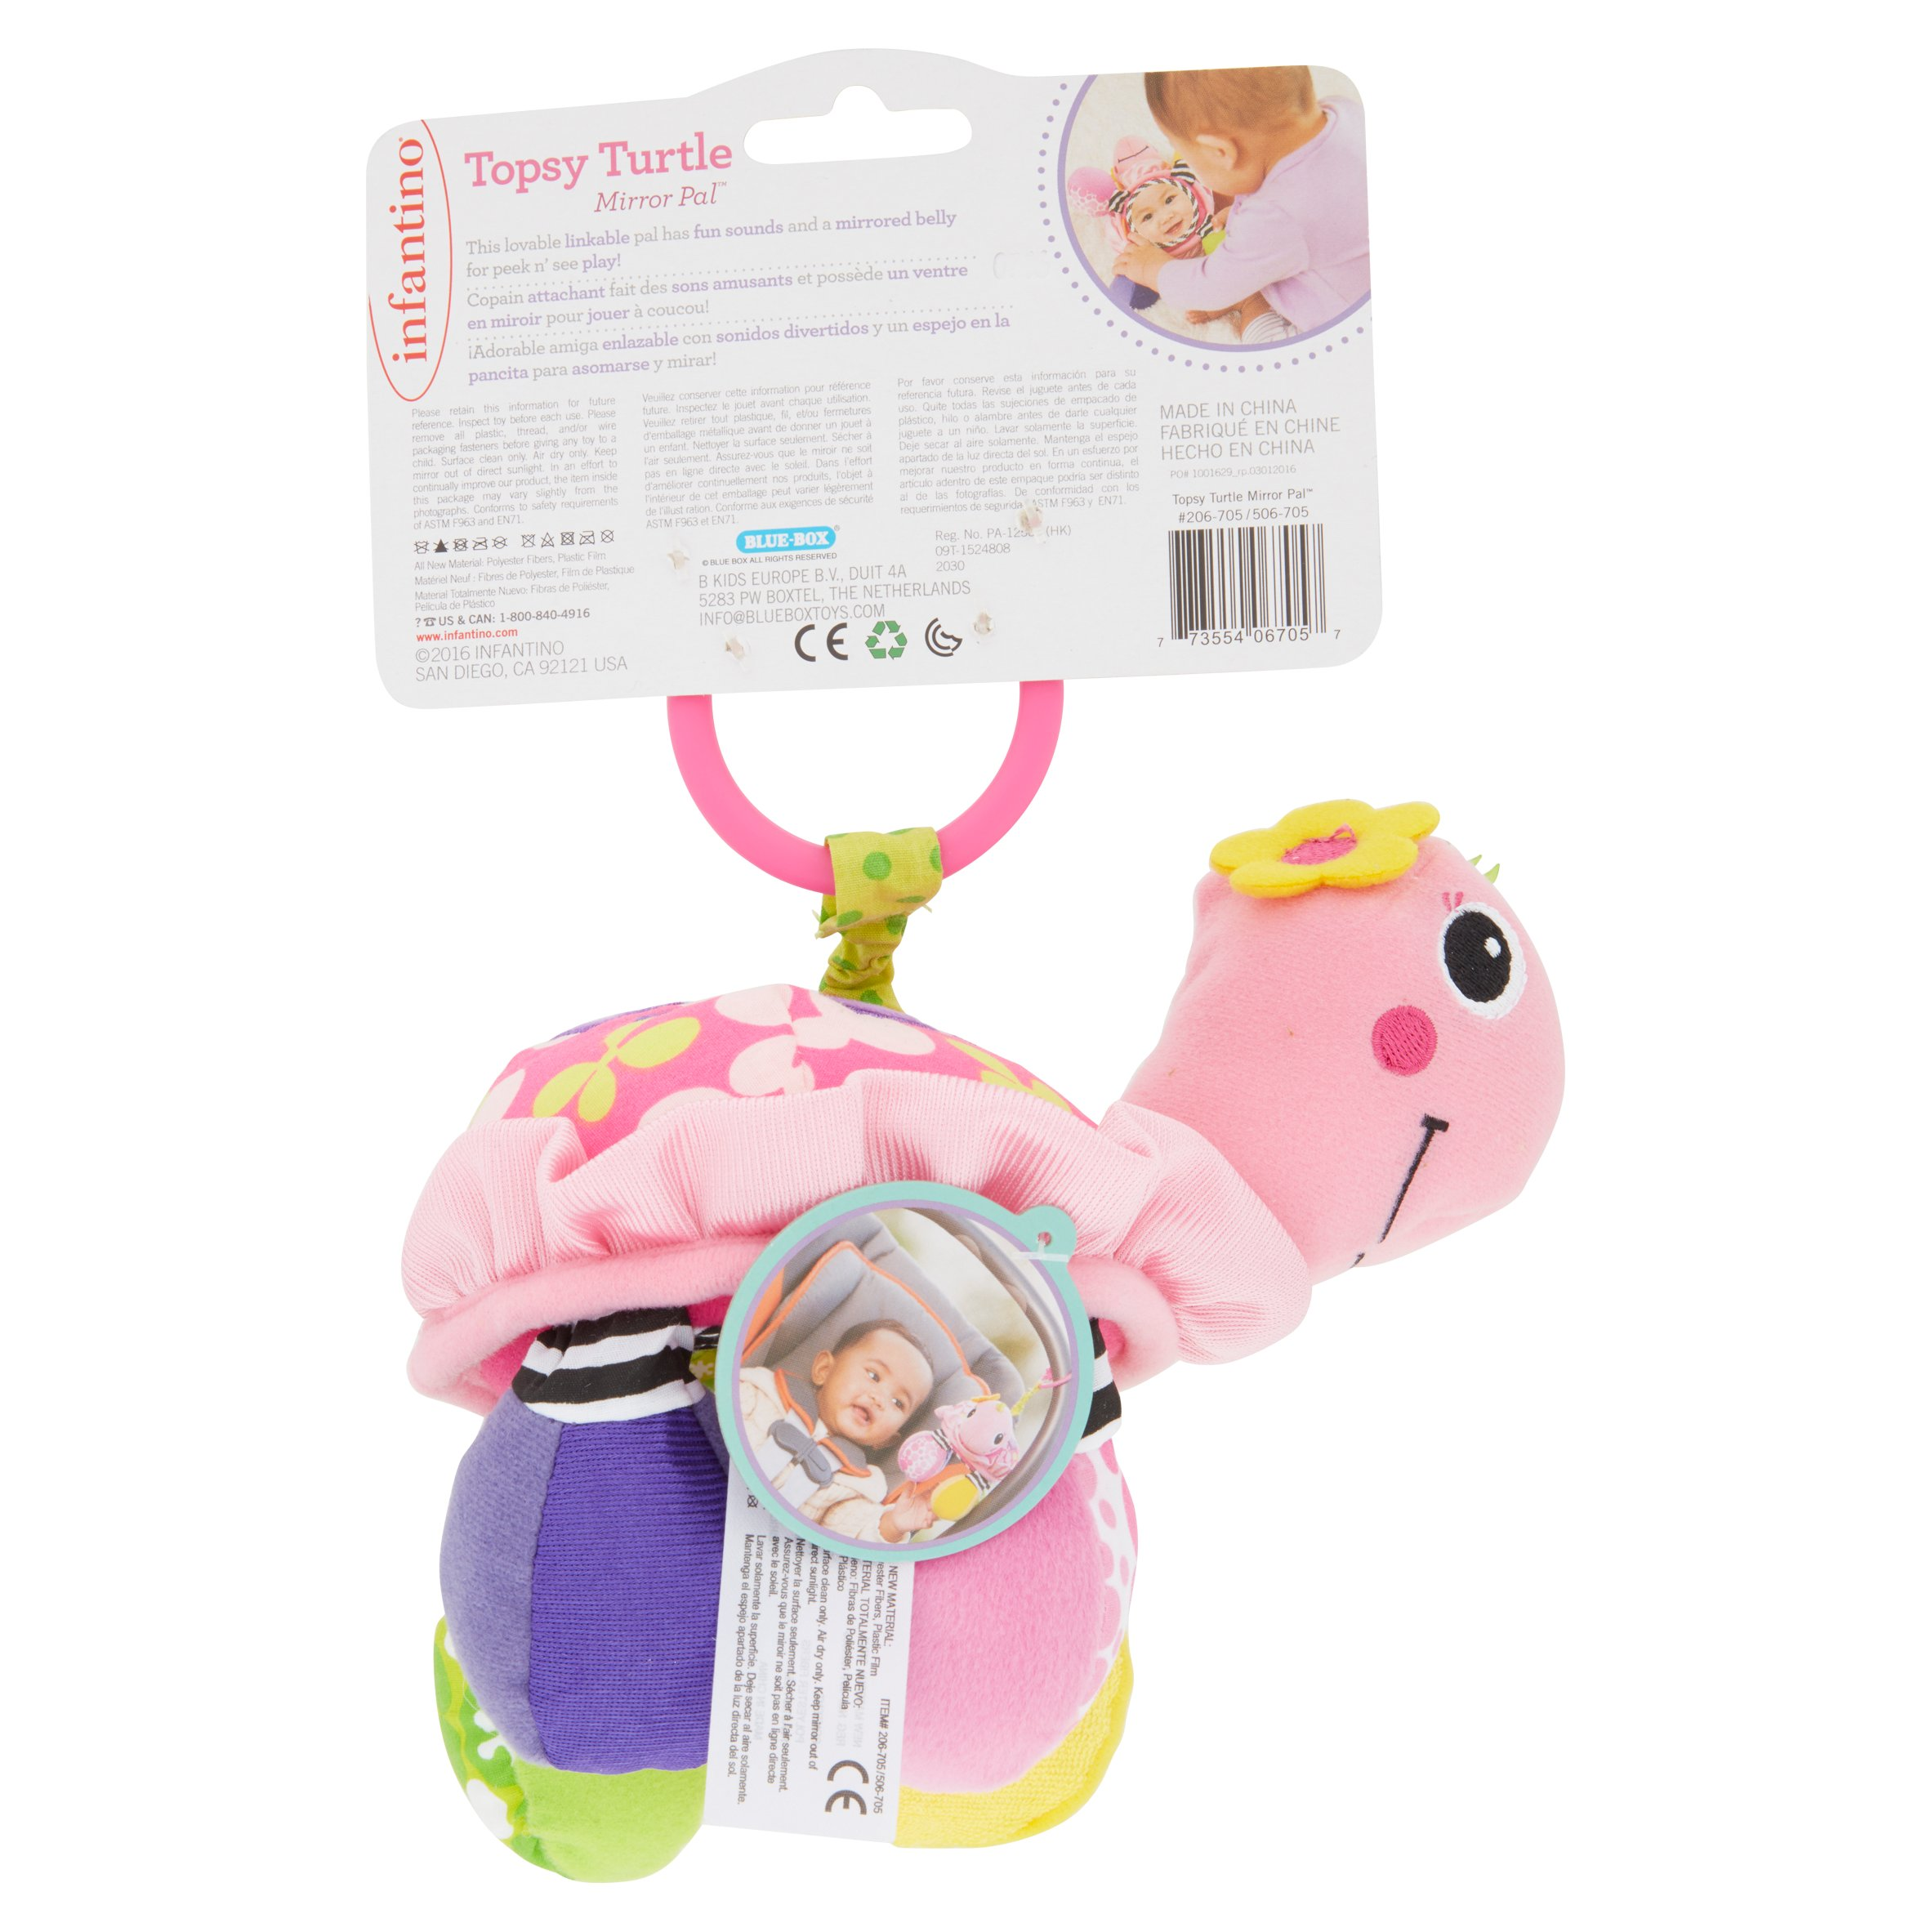 Infantino Sparkle Topsy Turtle Mirror Pal